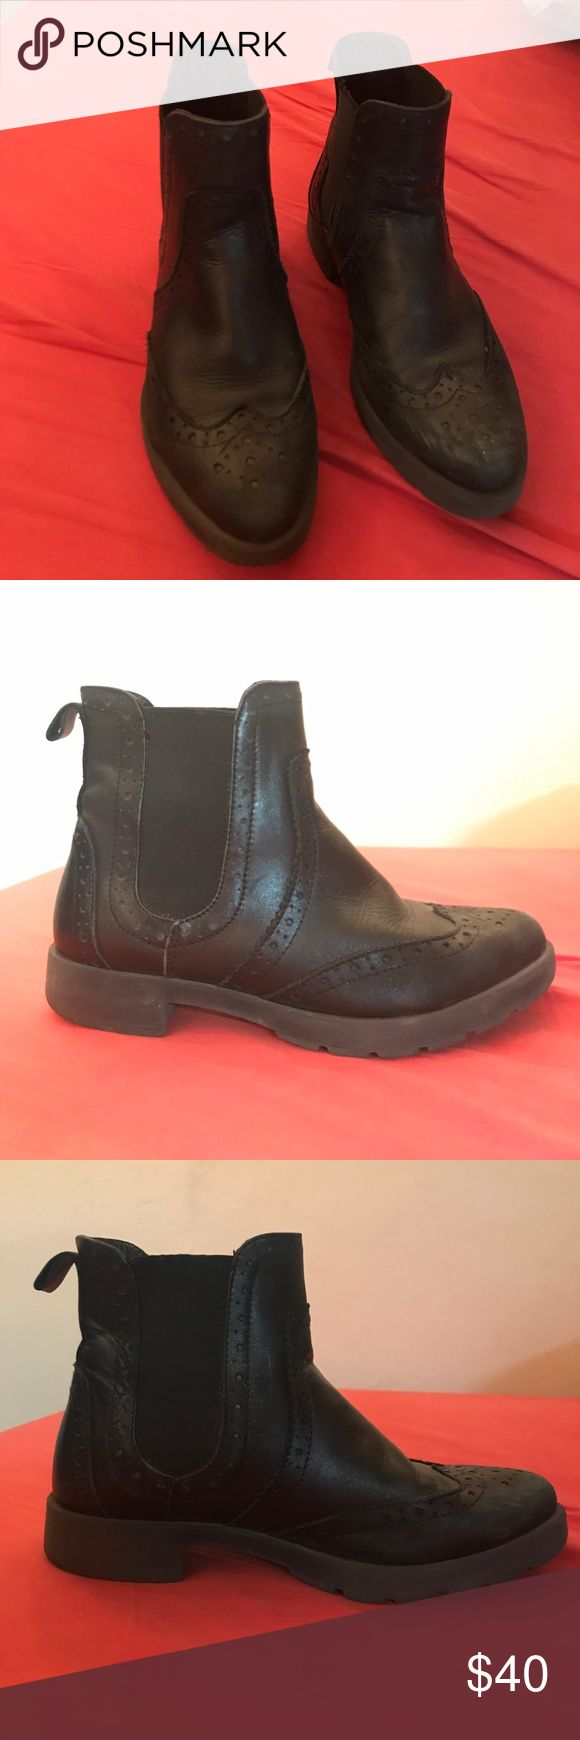 Steve Madden black leather Chelsea boots Awesome black leather oxford style chelseas with comfy insoles! Steve Madden Shoes Ankle Boots & Booties